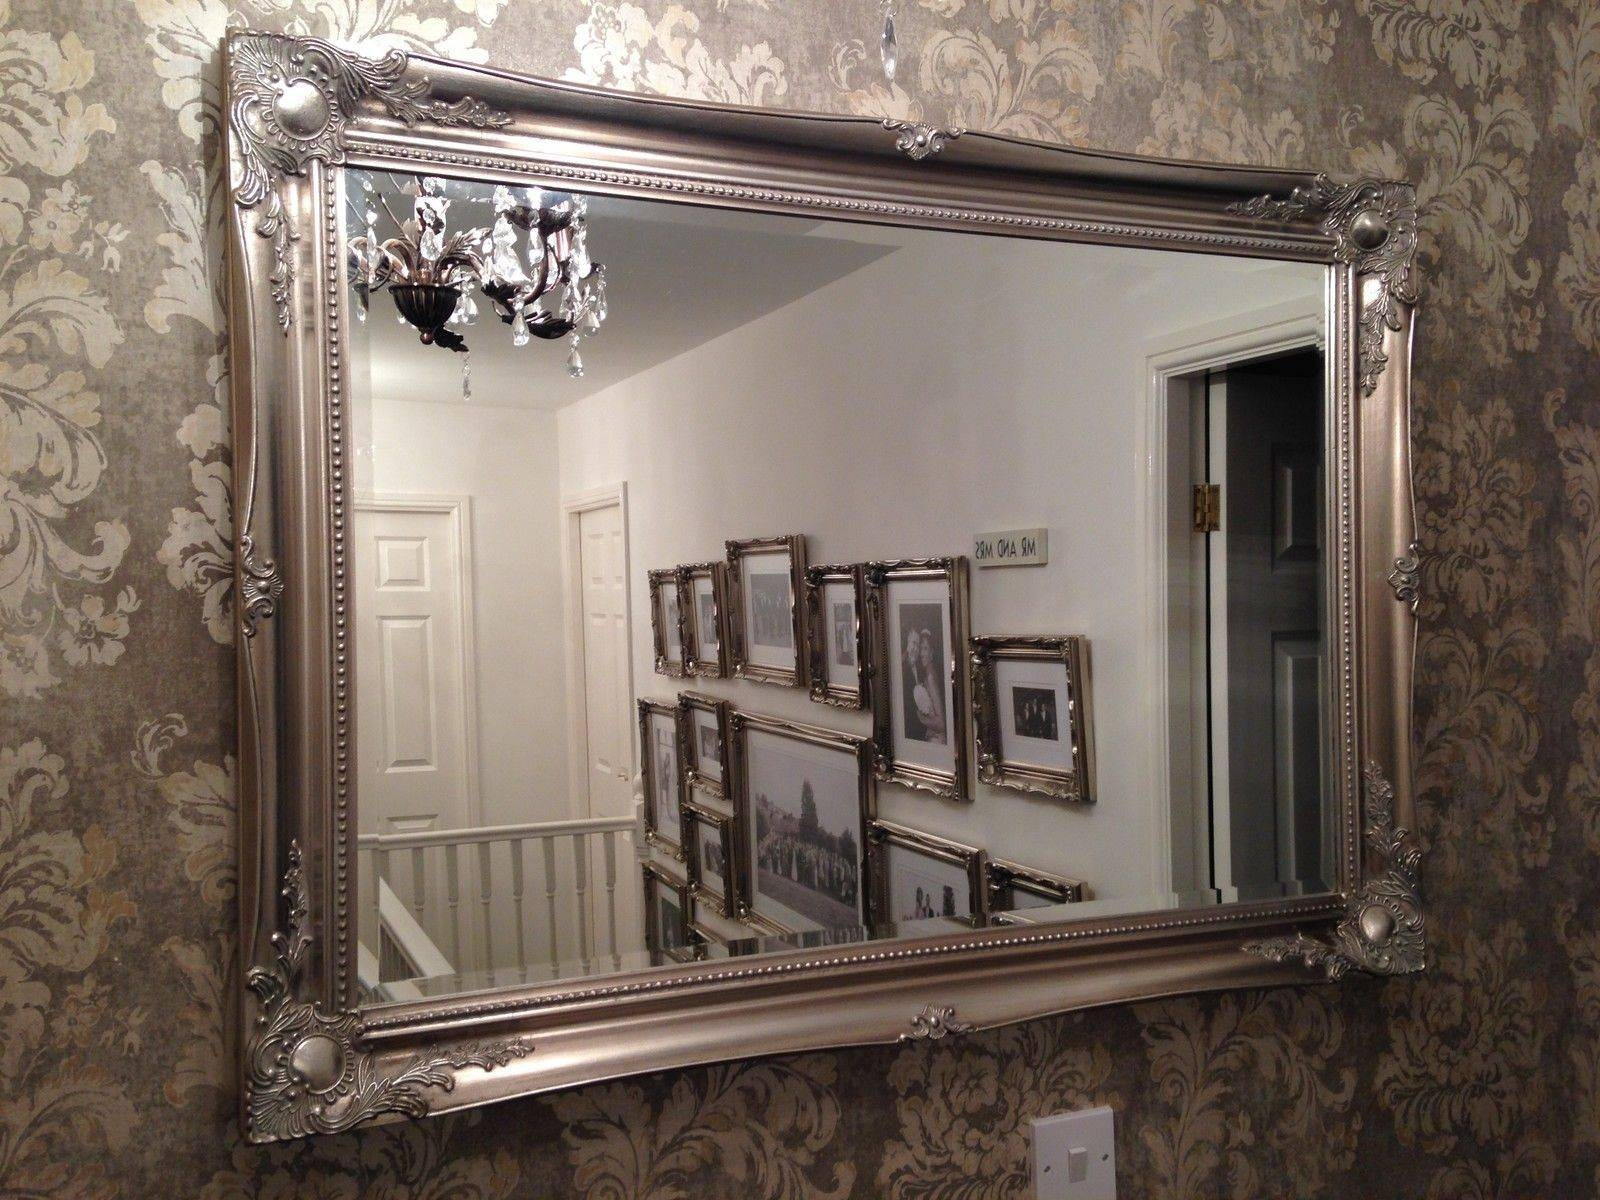 Large Antique Wall Mirror Ornate Frame Antique Ornate Wall Mirrors with regard to Vintage Shabby Chic Mirrors (Image 13 of 25)